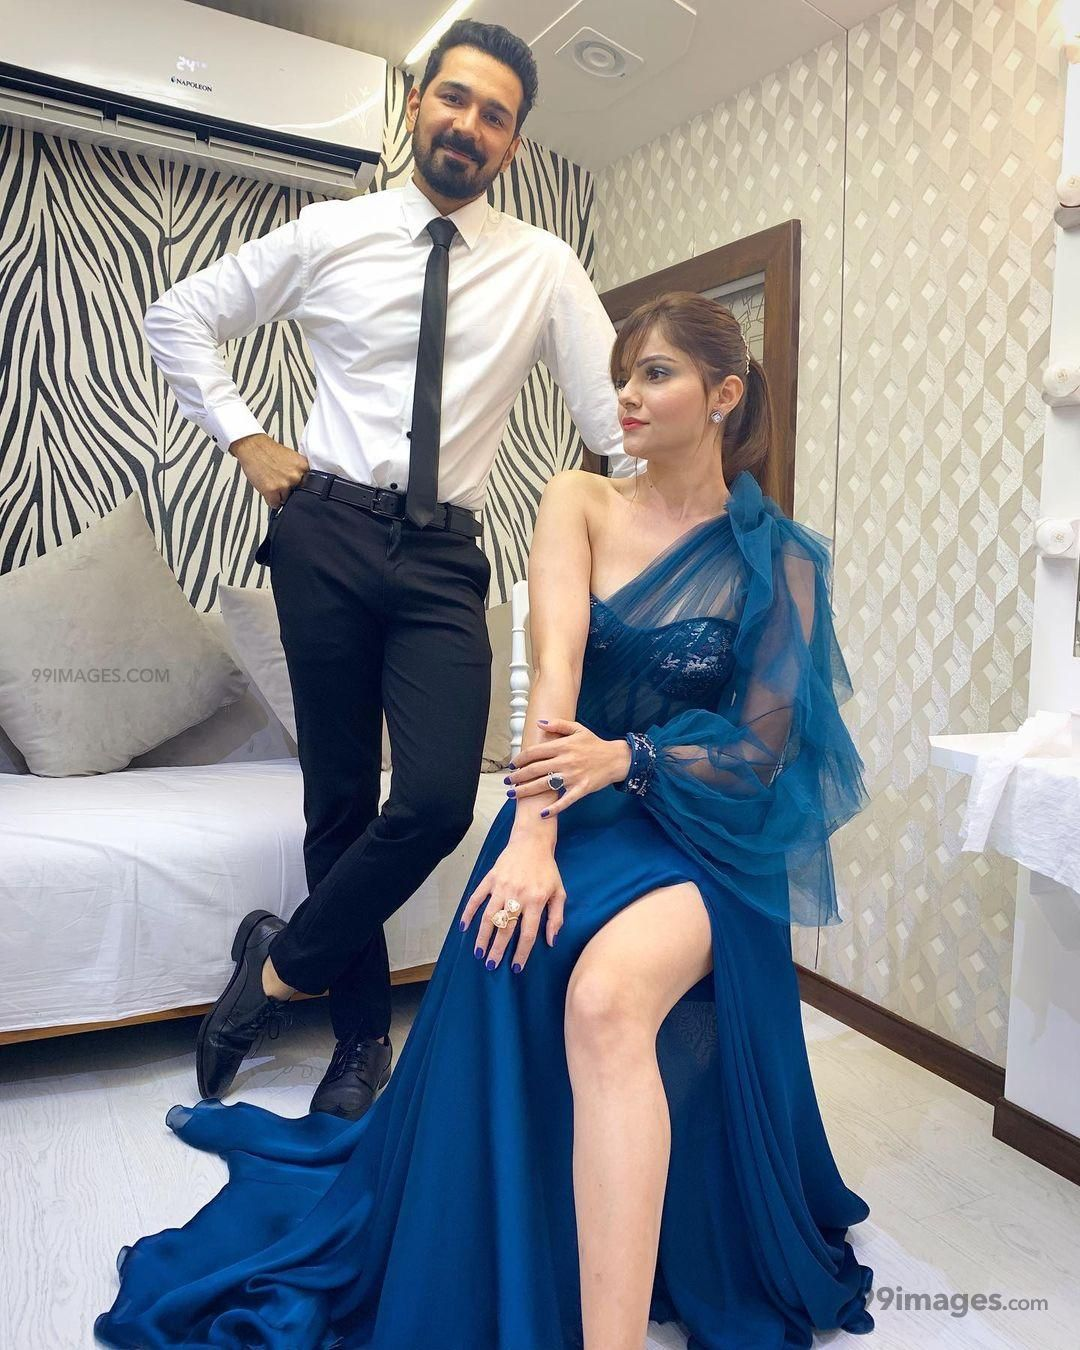 Rubina Dilaik Latest Hot HD Photos / Wallpapers (1080p) (Instagram / Facebook) (610017) - Rubina Dilaik